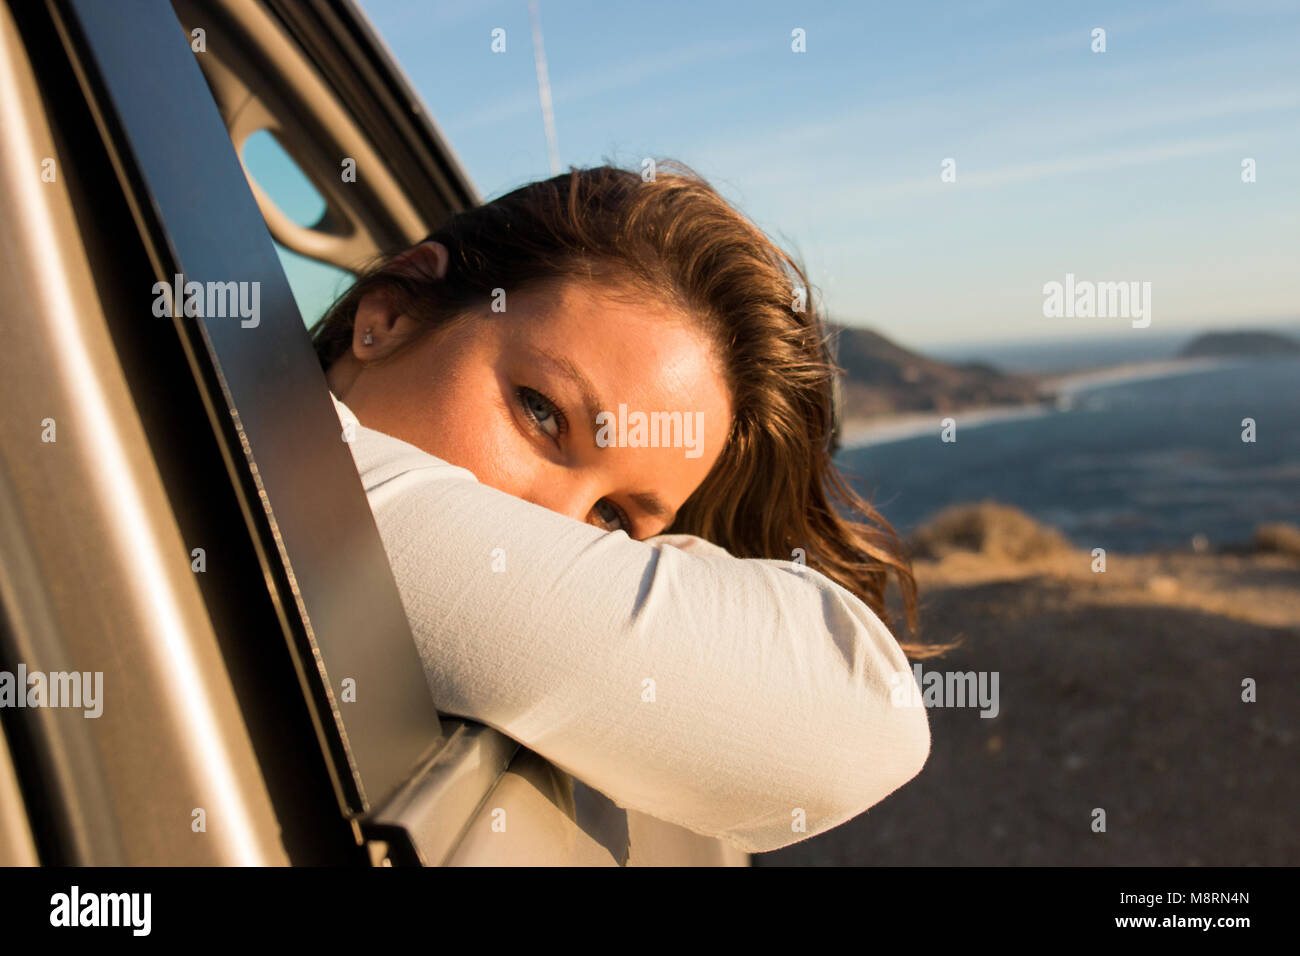 Portrait of woman looking through car window at beach against sky during sunset Stock Photo